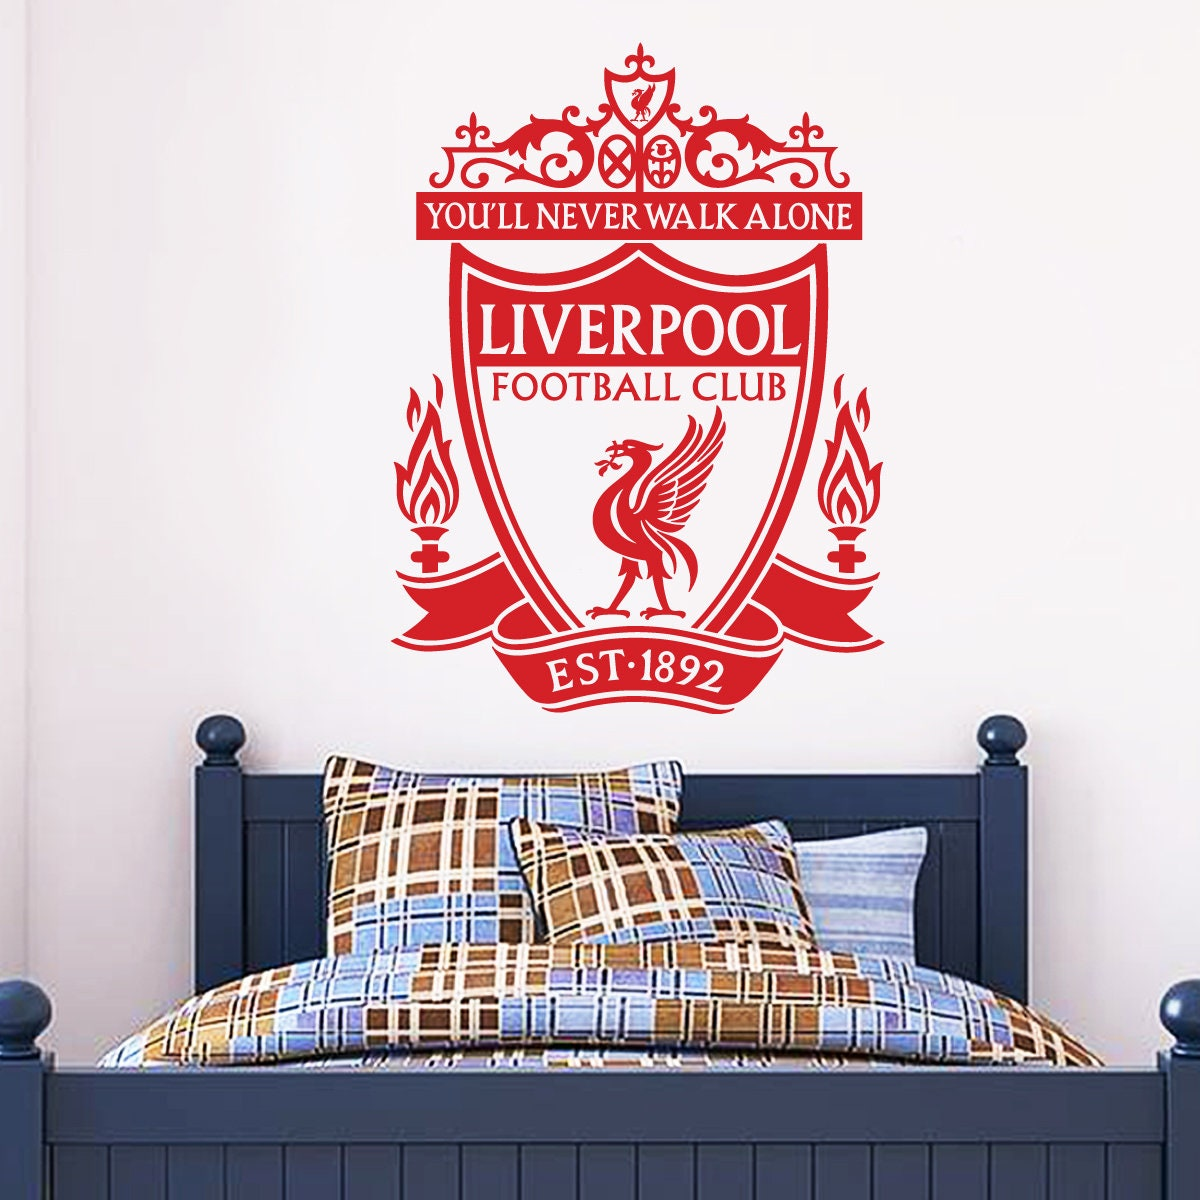 771d4eb98bf Liverpool Football Club One Colour Crest Wall Decal LFC   Etsy